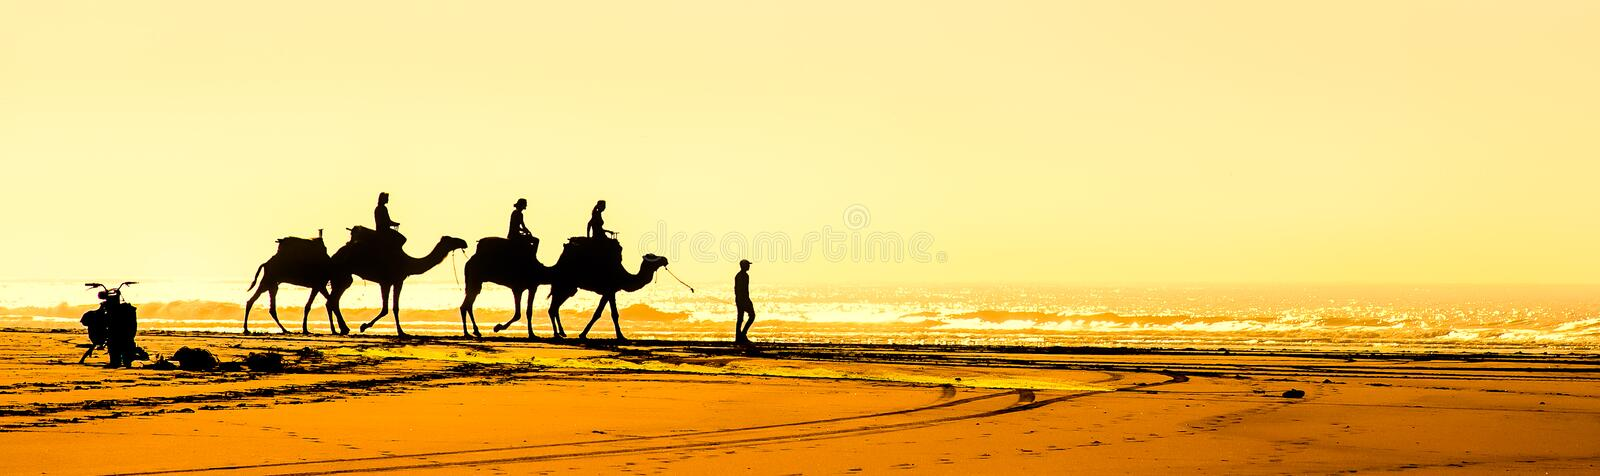 Camels on Beach by Essaouira in Morocco stock images